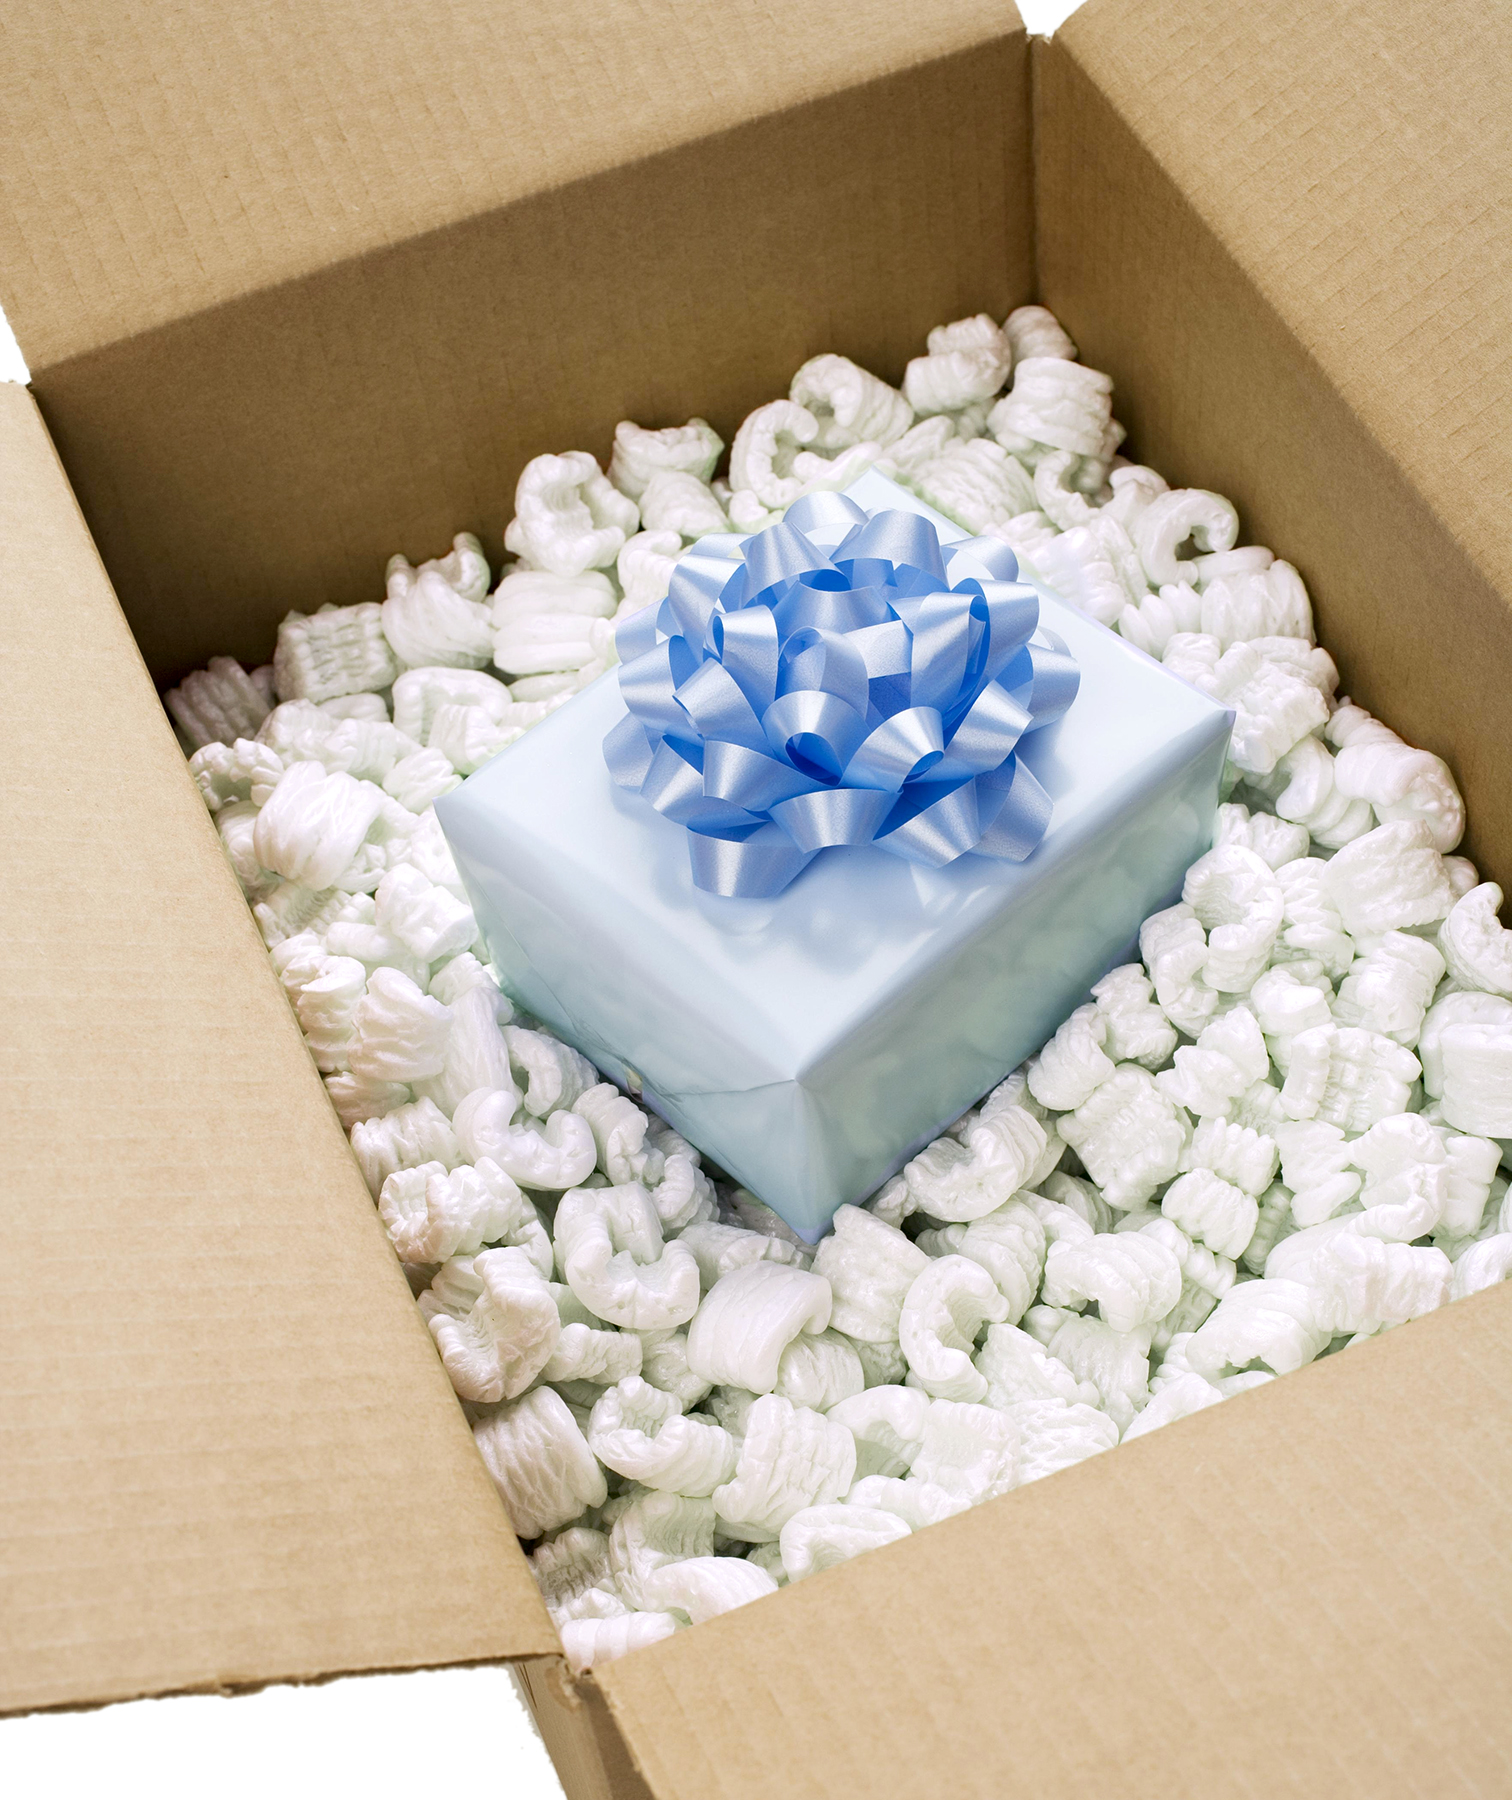 When To Send A Wedding Gift: Do You Have To Send A Gift If You Can't Make It To The